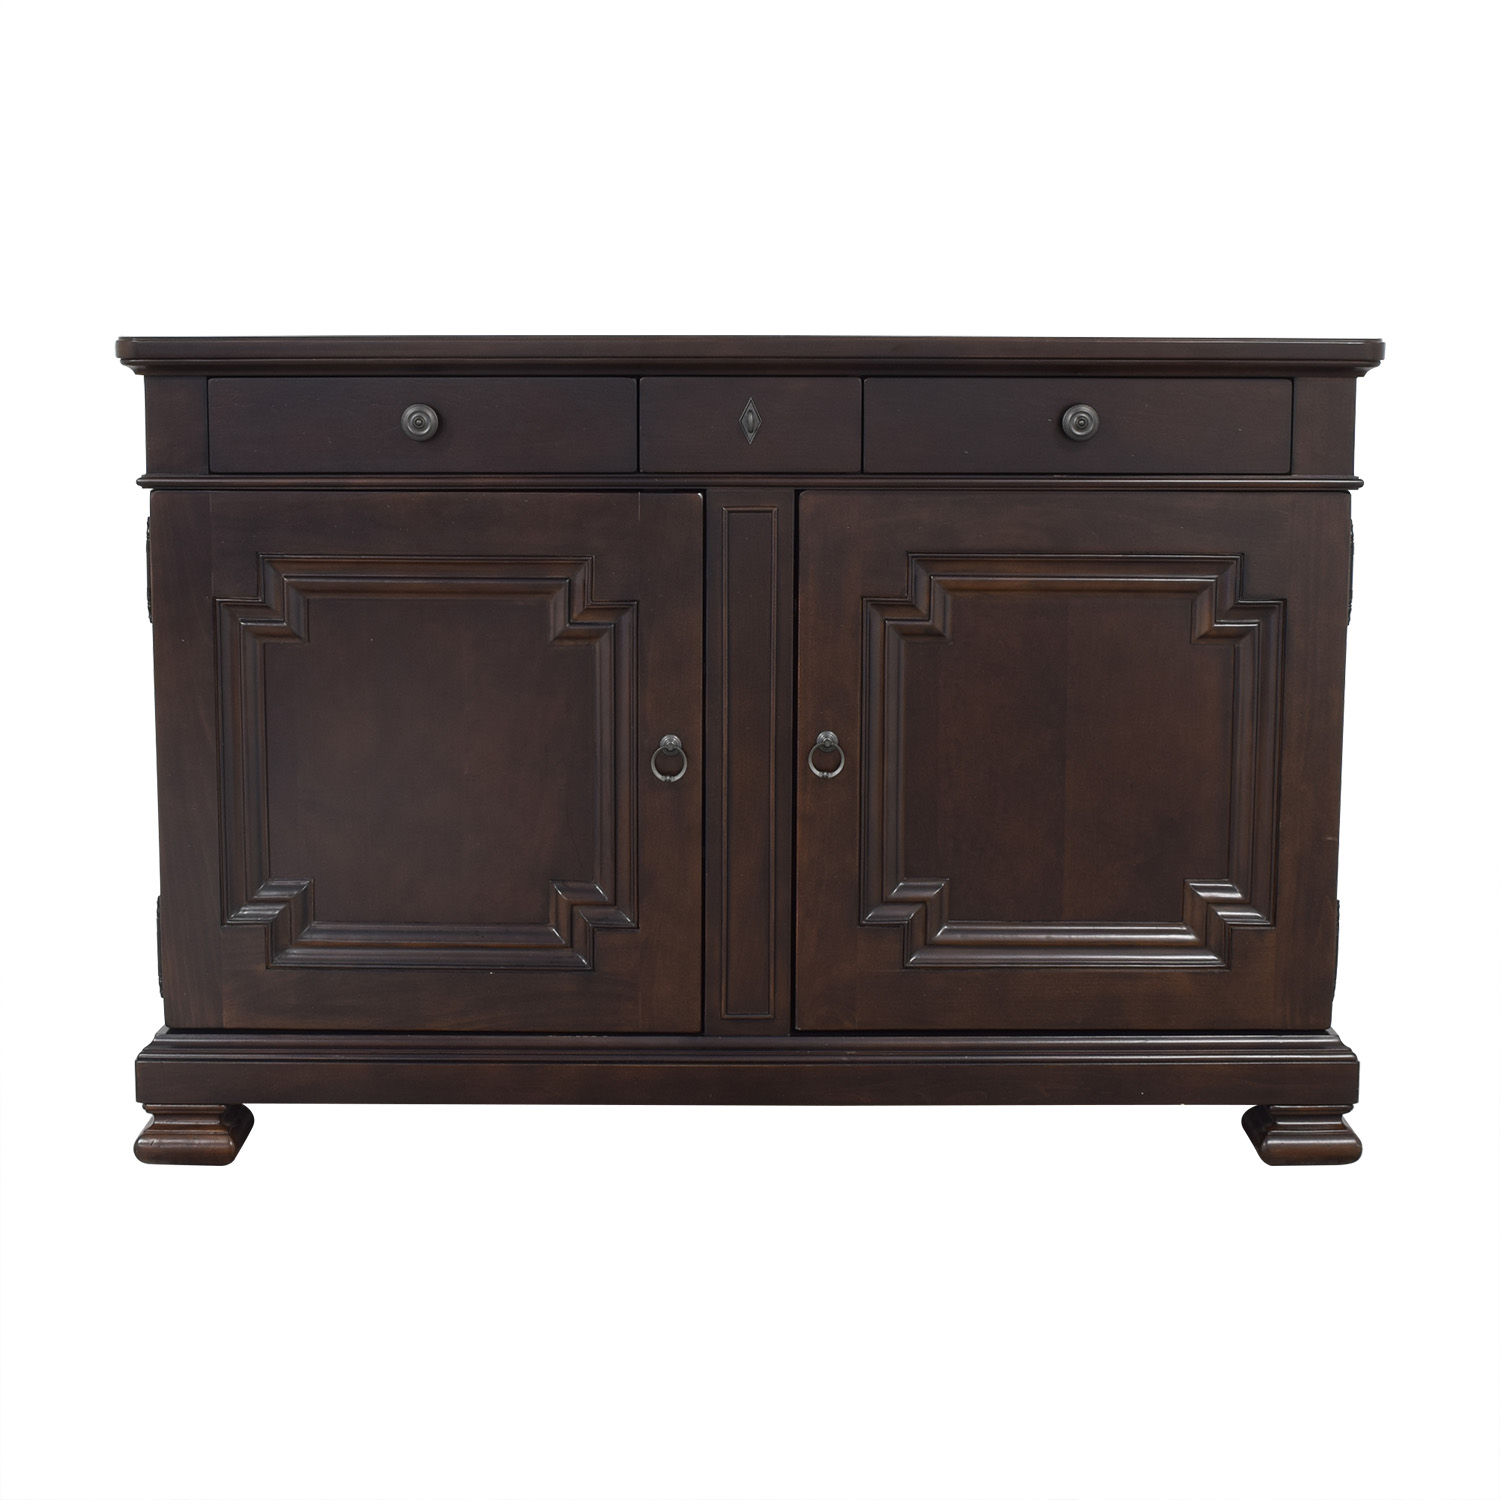 Universal Furniture Macy's Universal Furniture Dining Credenza dimensions